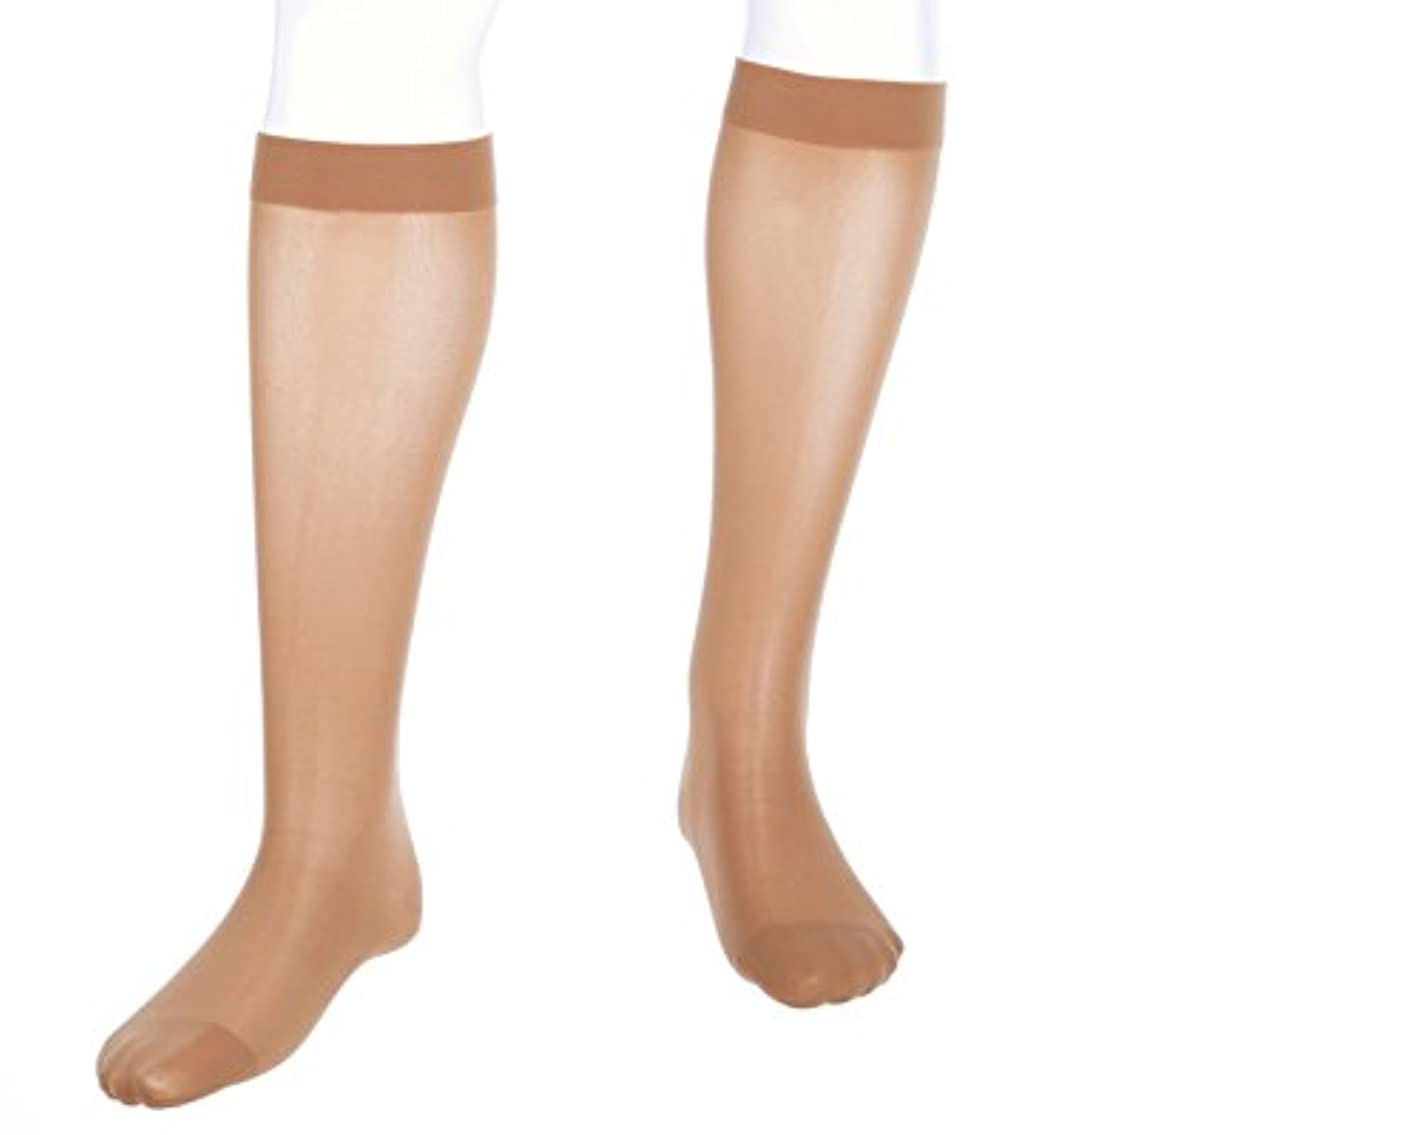 決めます人生を作るよく話されるMediven Assure, Closed Toe, 20-30mmHg, Knee High Compression Stocking, Large, Beige by Medi